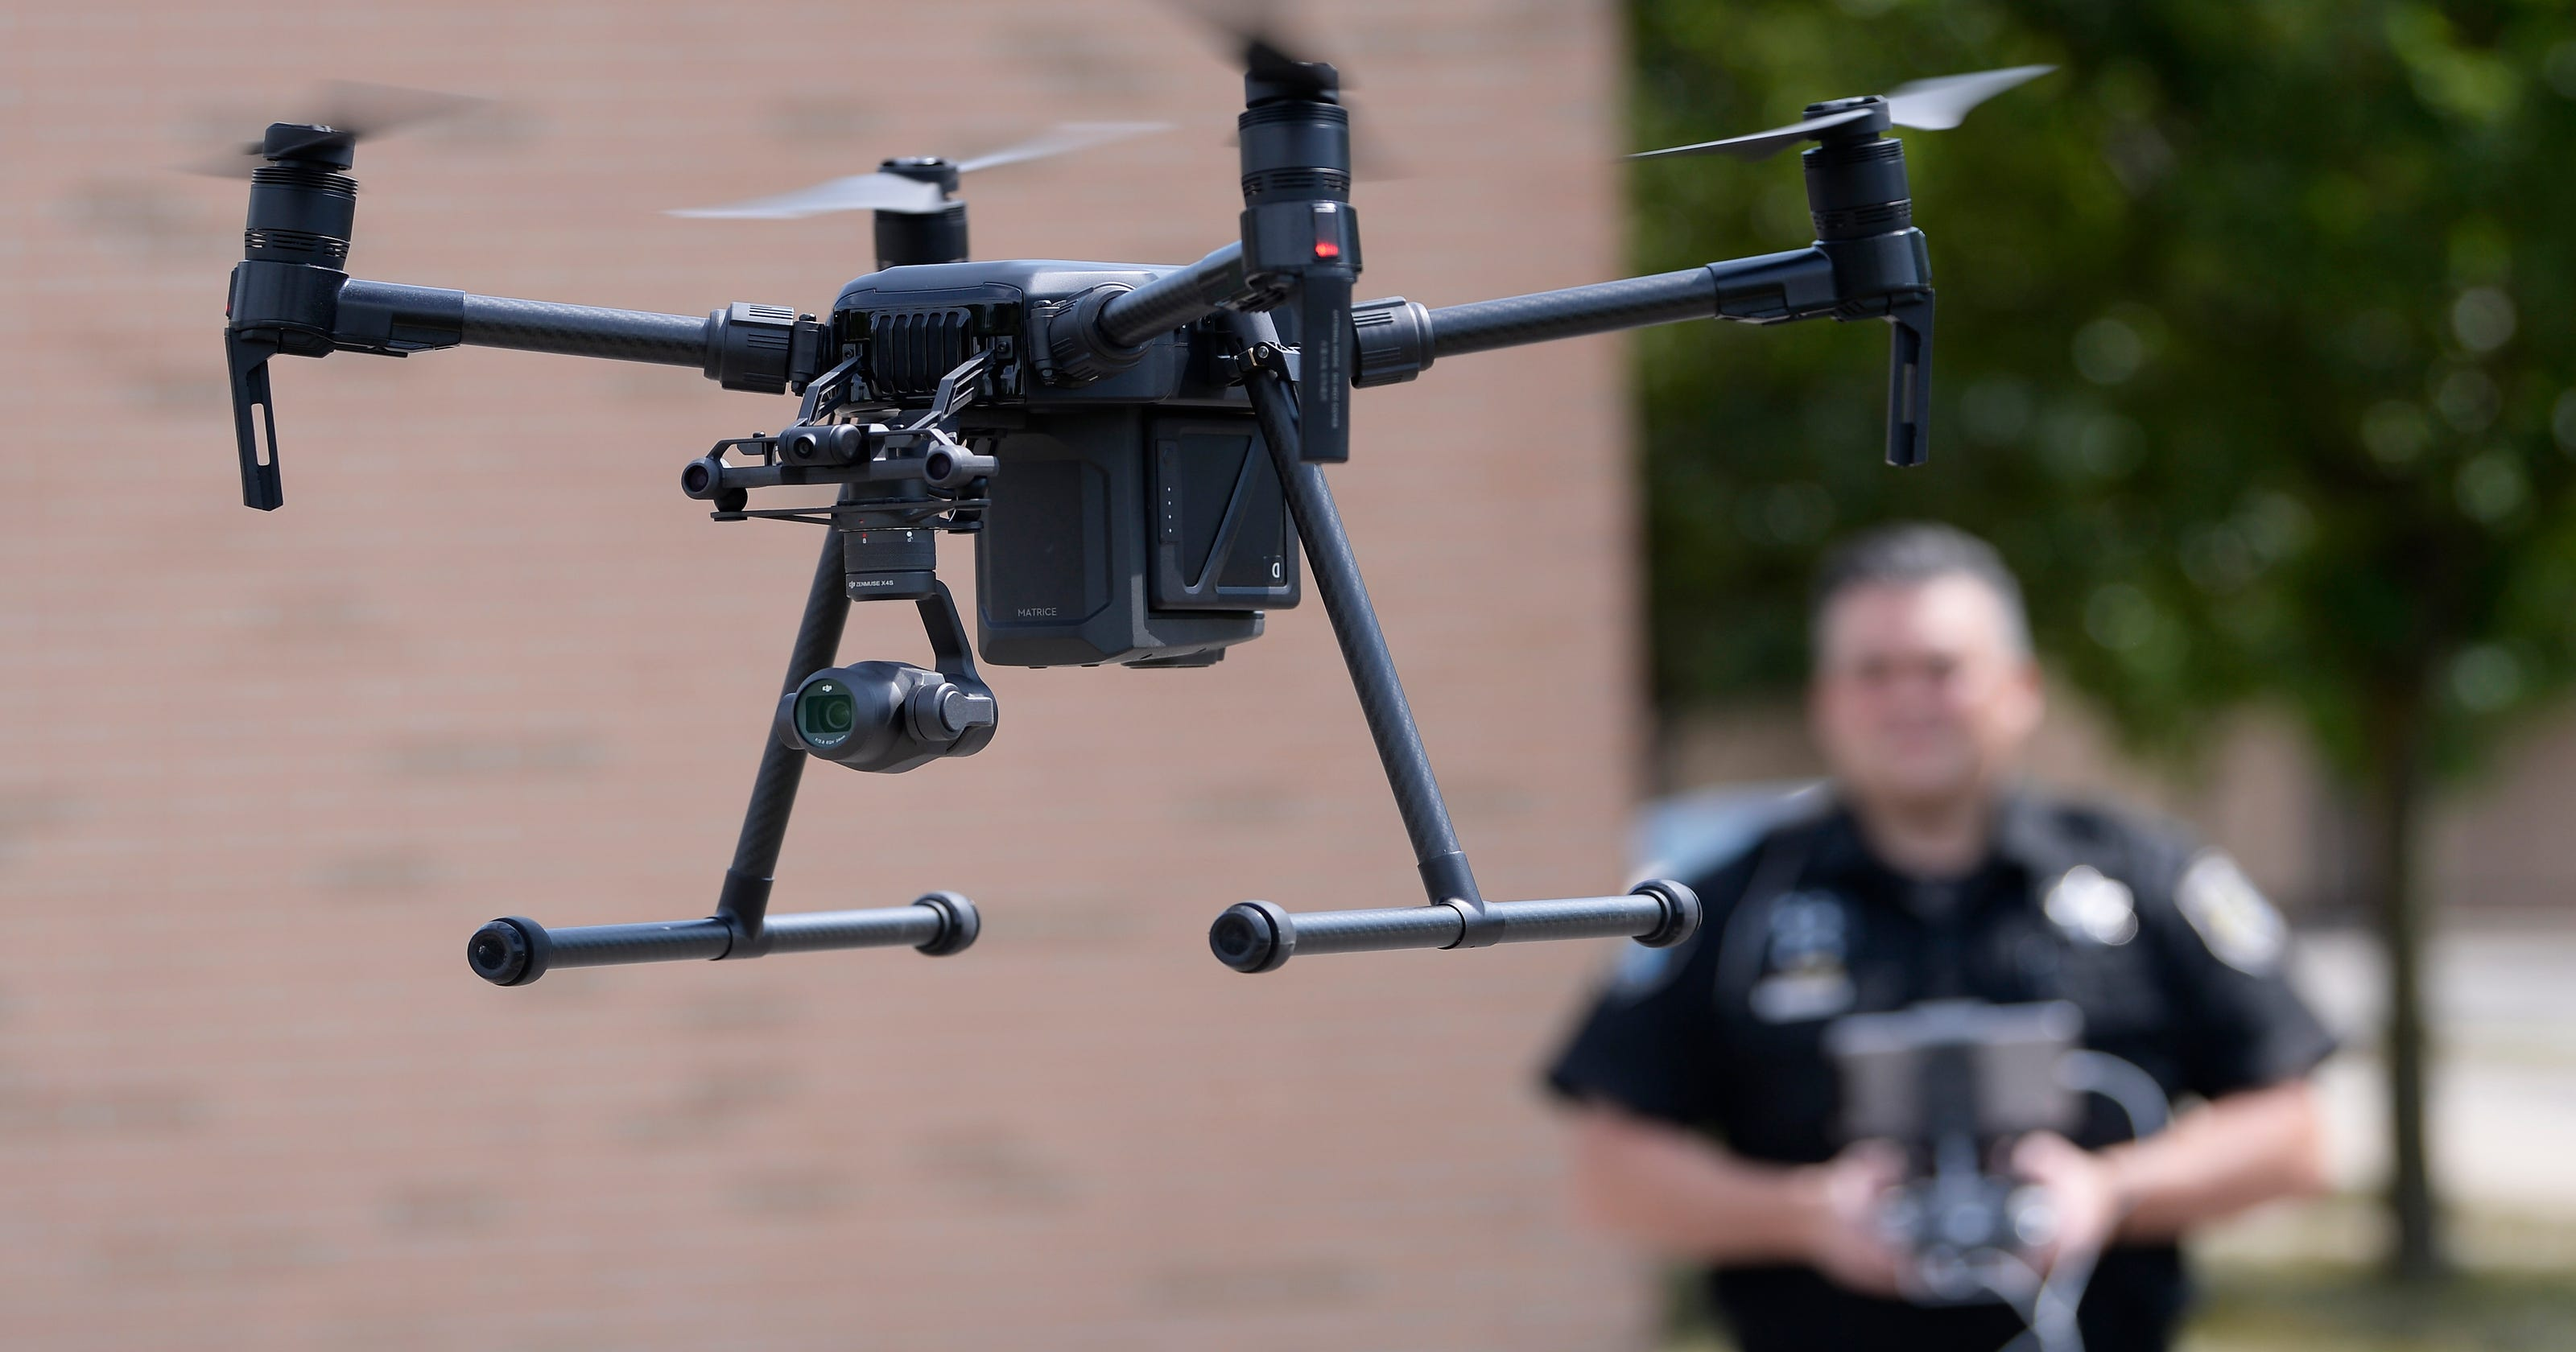 Police drones pit safety vs  privacy concerns in Michigan